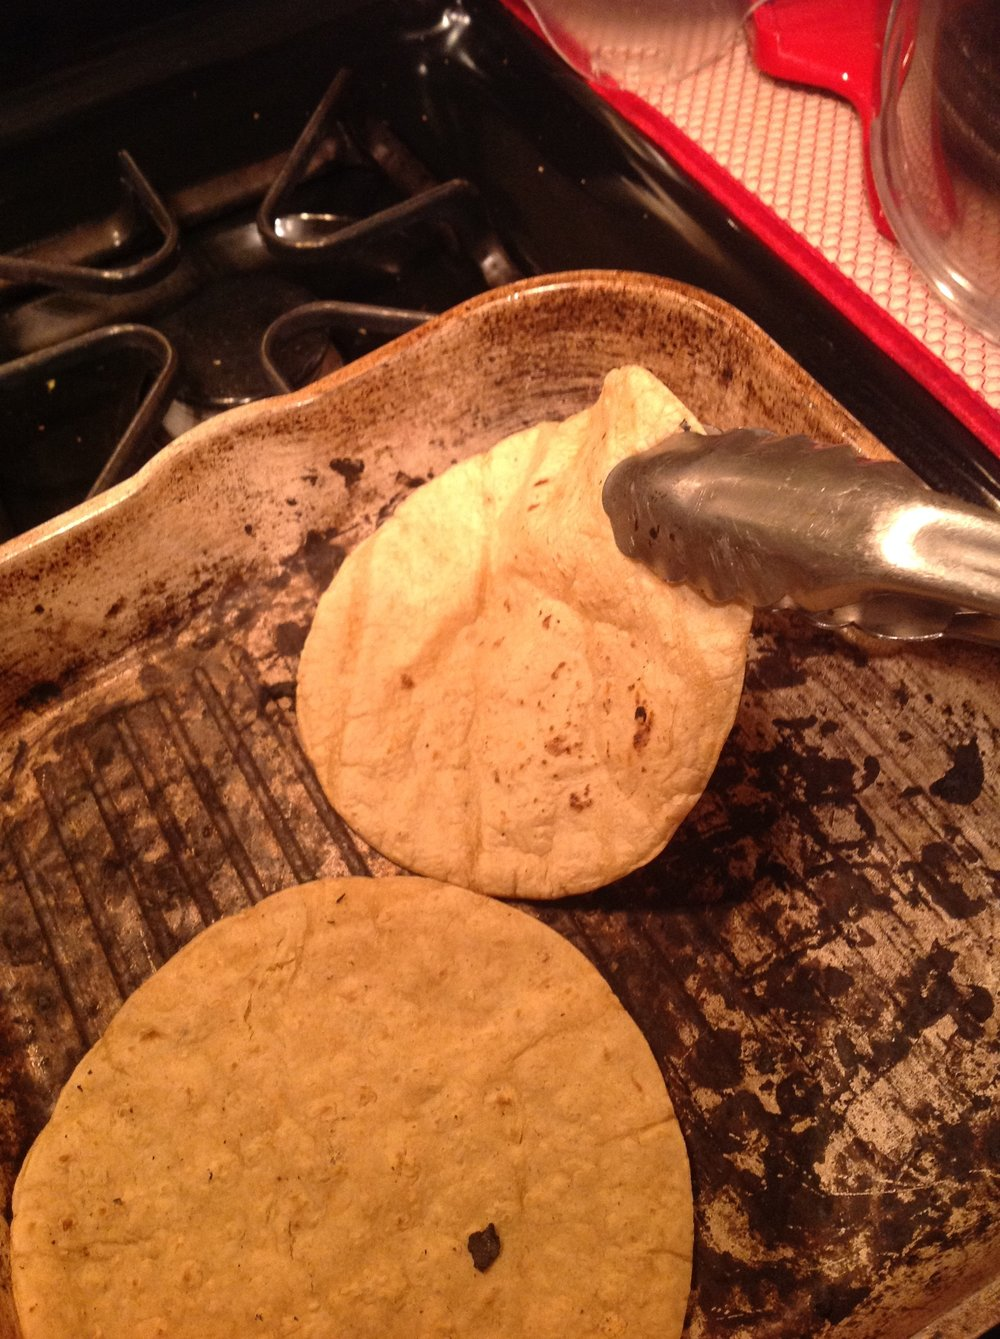 Chef's Tip - Warm the tortillas right on the grill.  You don't need oil to add healthy, fat-free flavor to this healthy Mexican vegan recipe